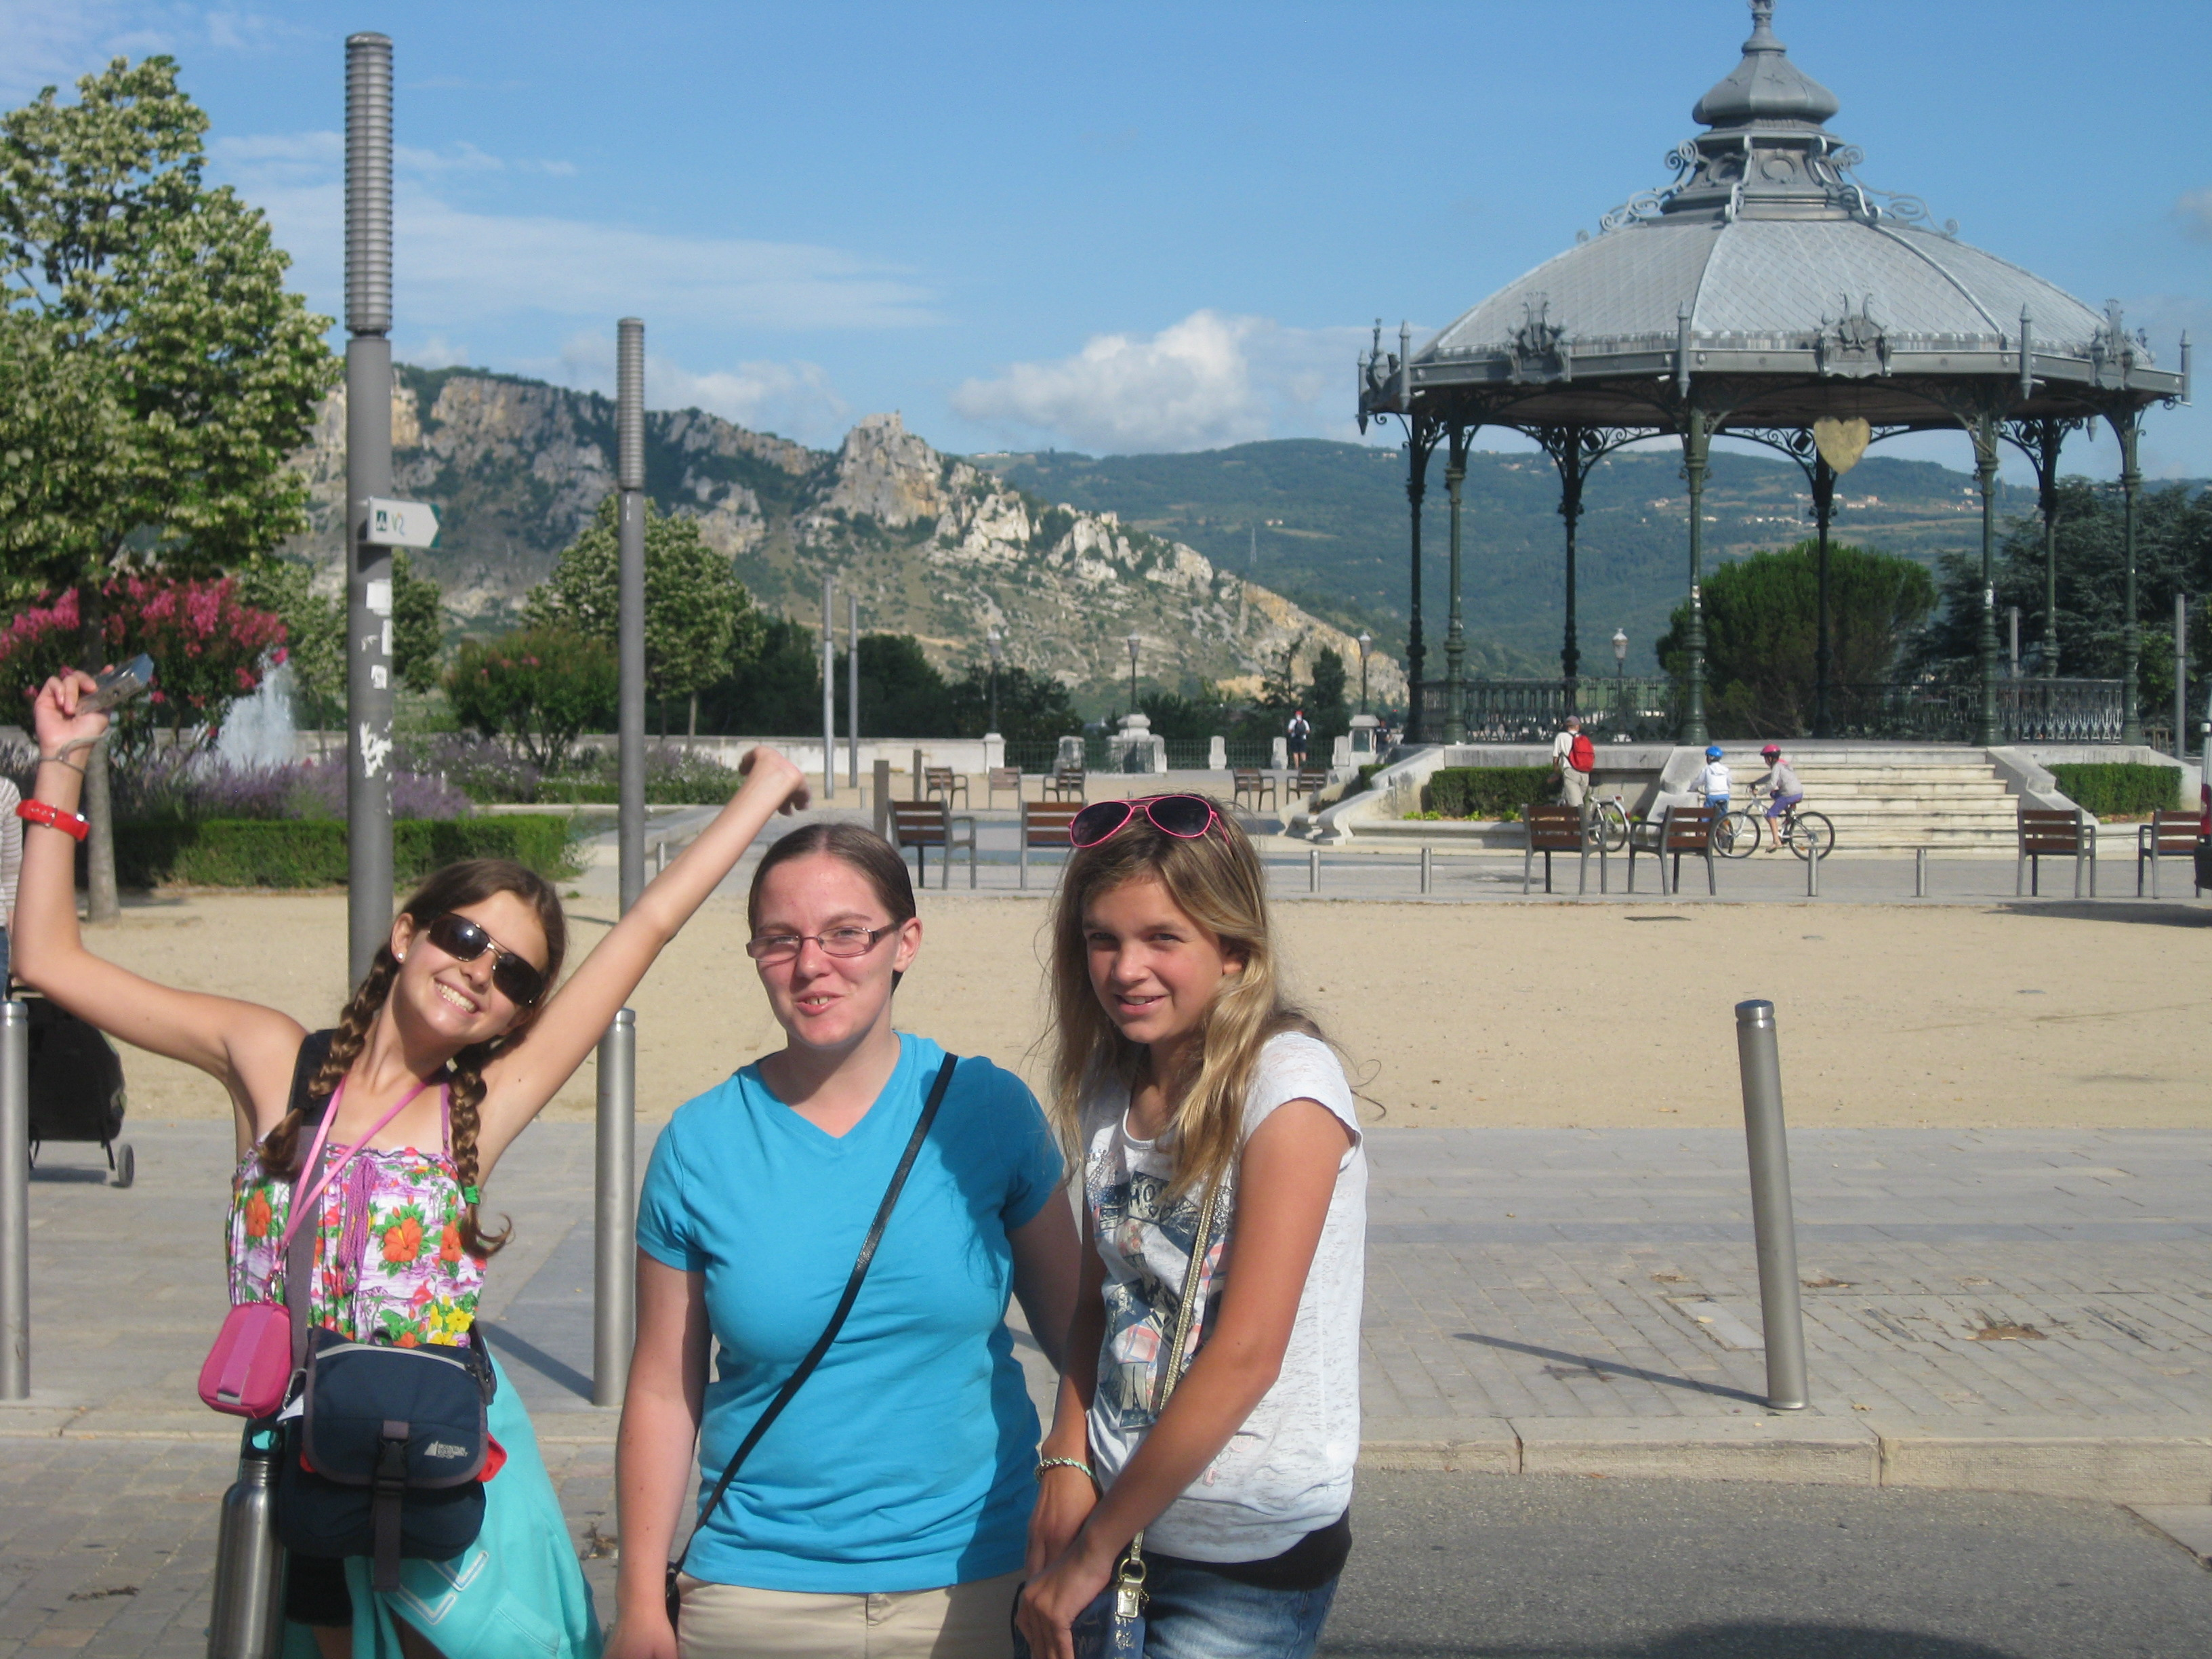 Quincy, Emily and Lauren at Parc Jouvet